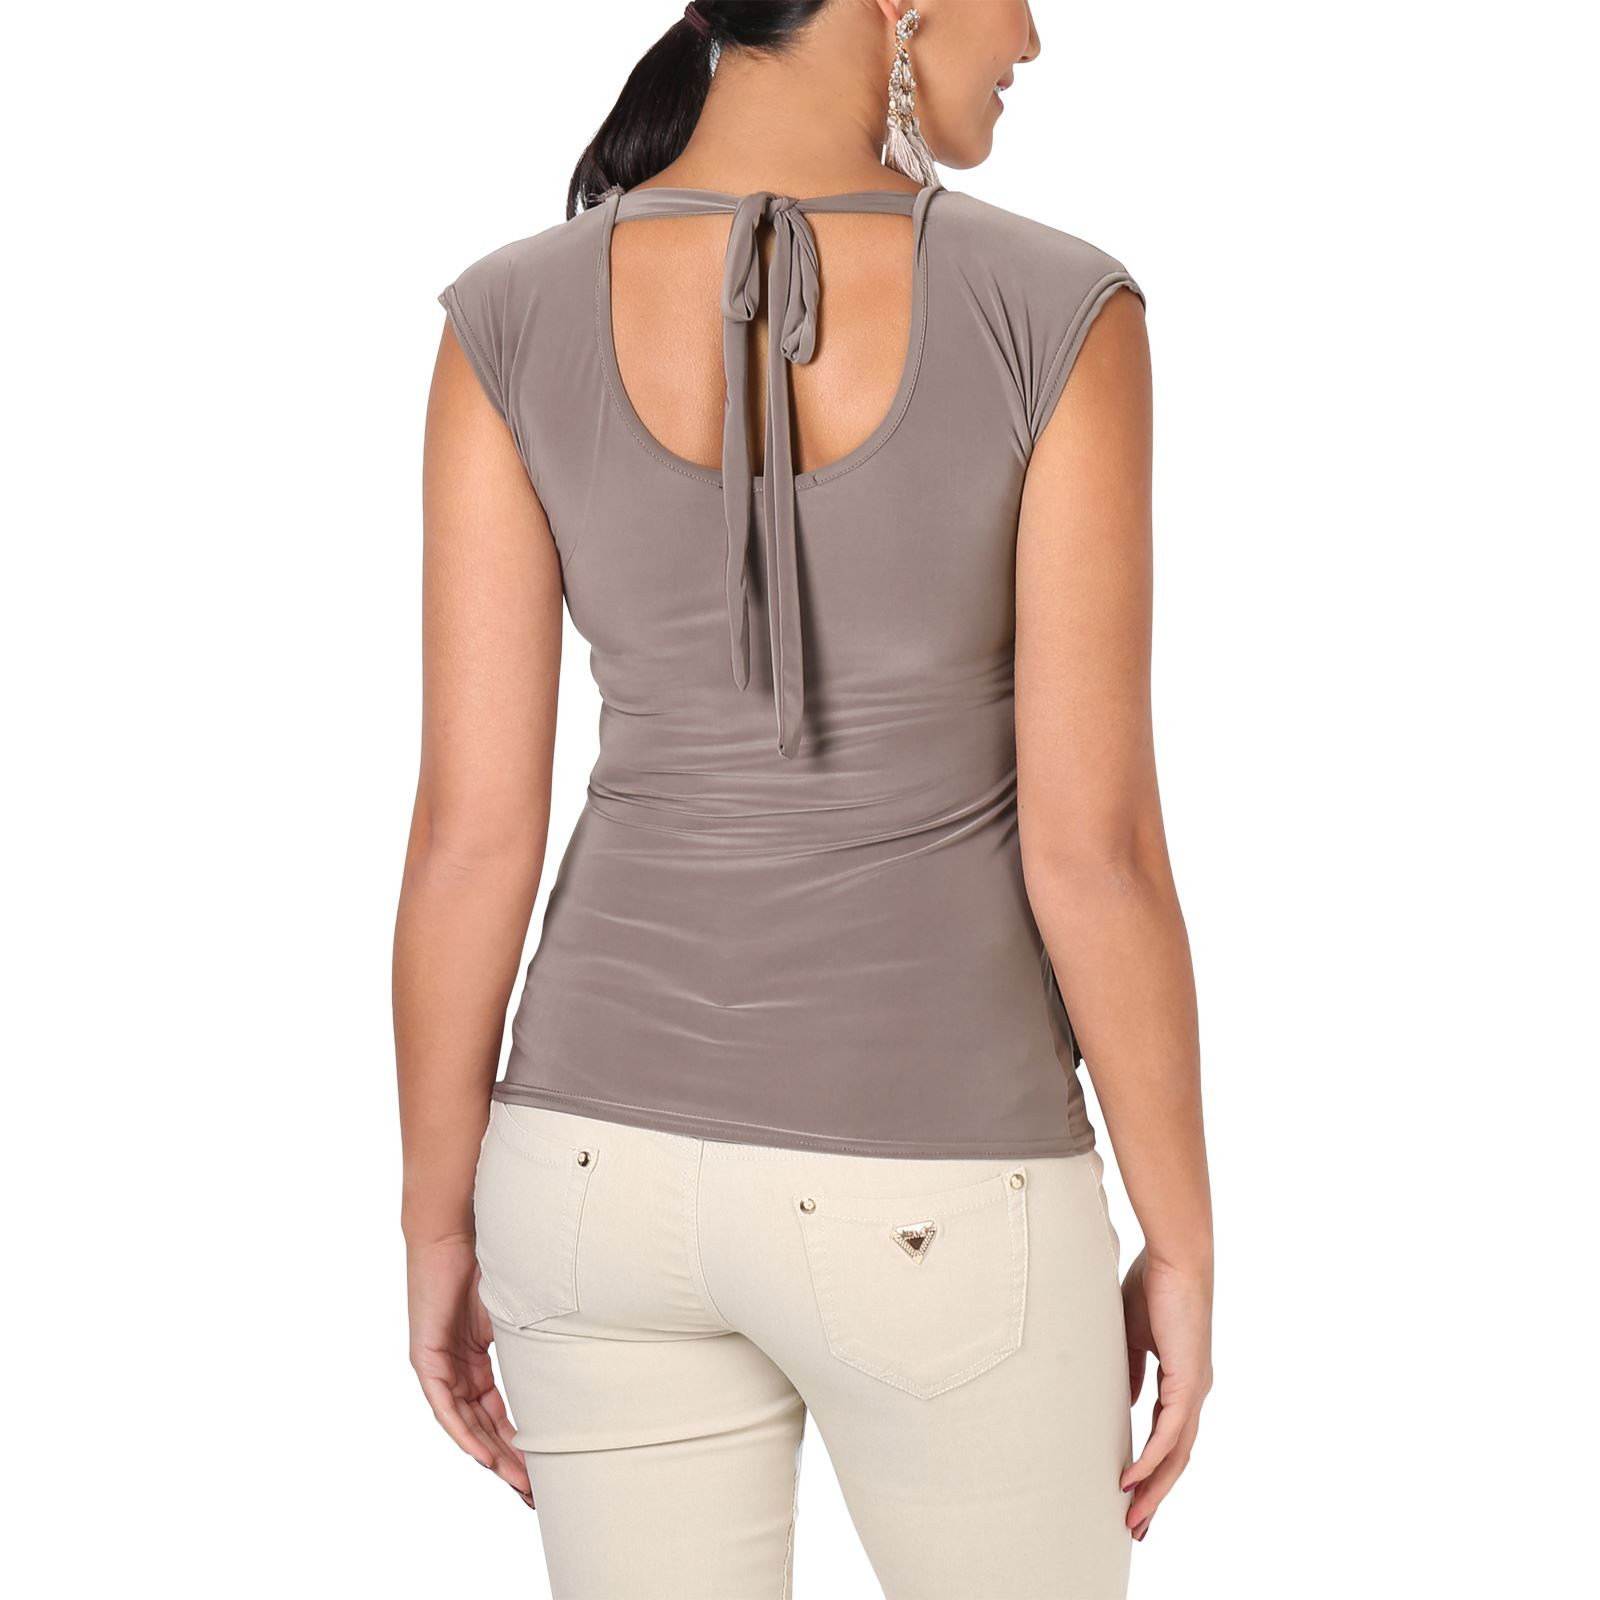 Womens-Ladies-Cowl-Neck-Blouse-Sleeveless-Stretch-Summer-Jersey-Top-Size-8-20 thumbnail 10